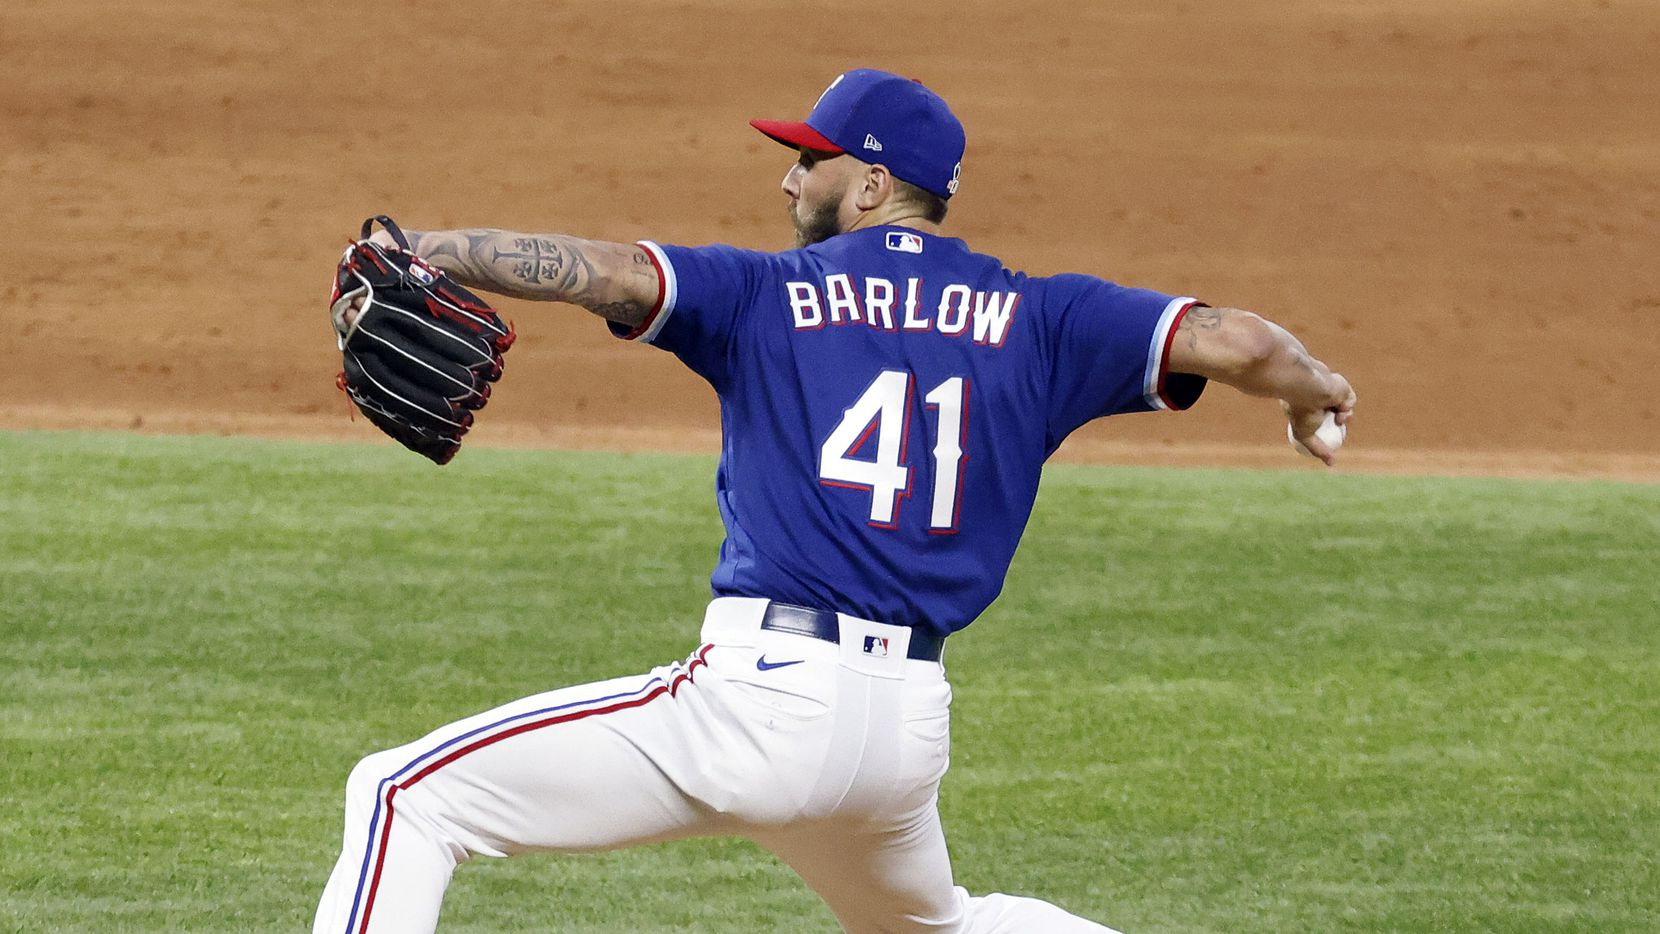 Texas Rangers minor league relief pitcher Joe Barlow throws against the Kansas City Royals in an alternate-site game for minor leaguers at Globe Life Field in Arlington, Friday, April 23, 2021.